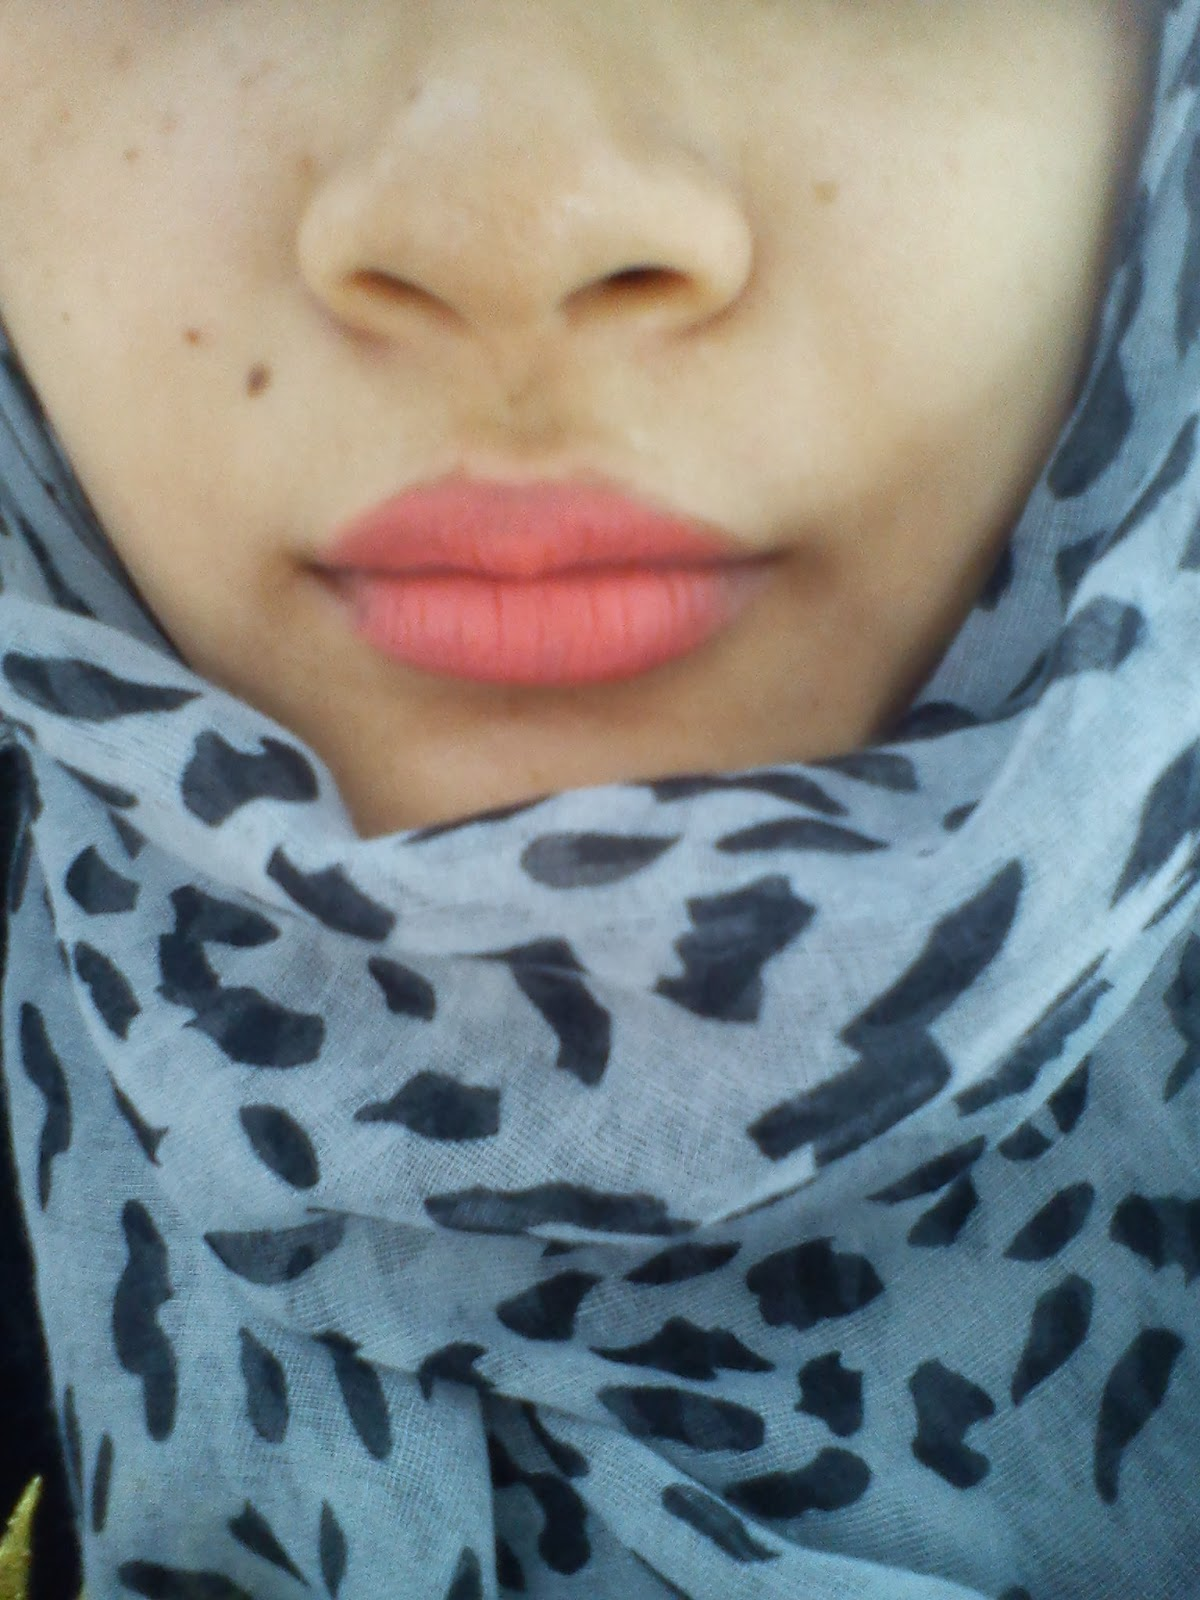 Wardah Long Lasting Lipstick Fabulous Peach 01